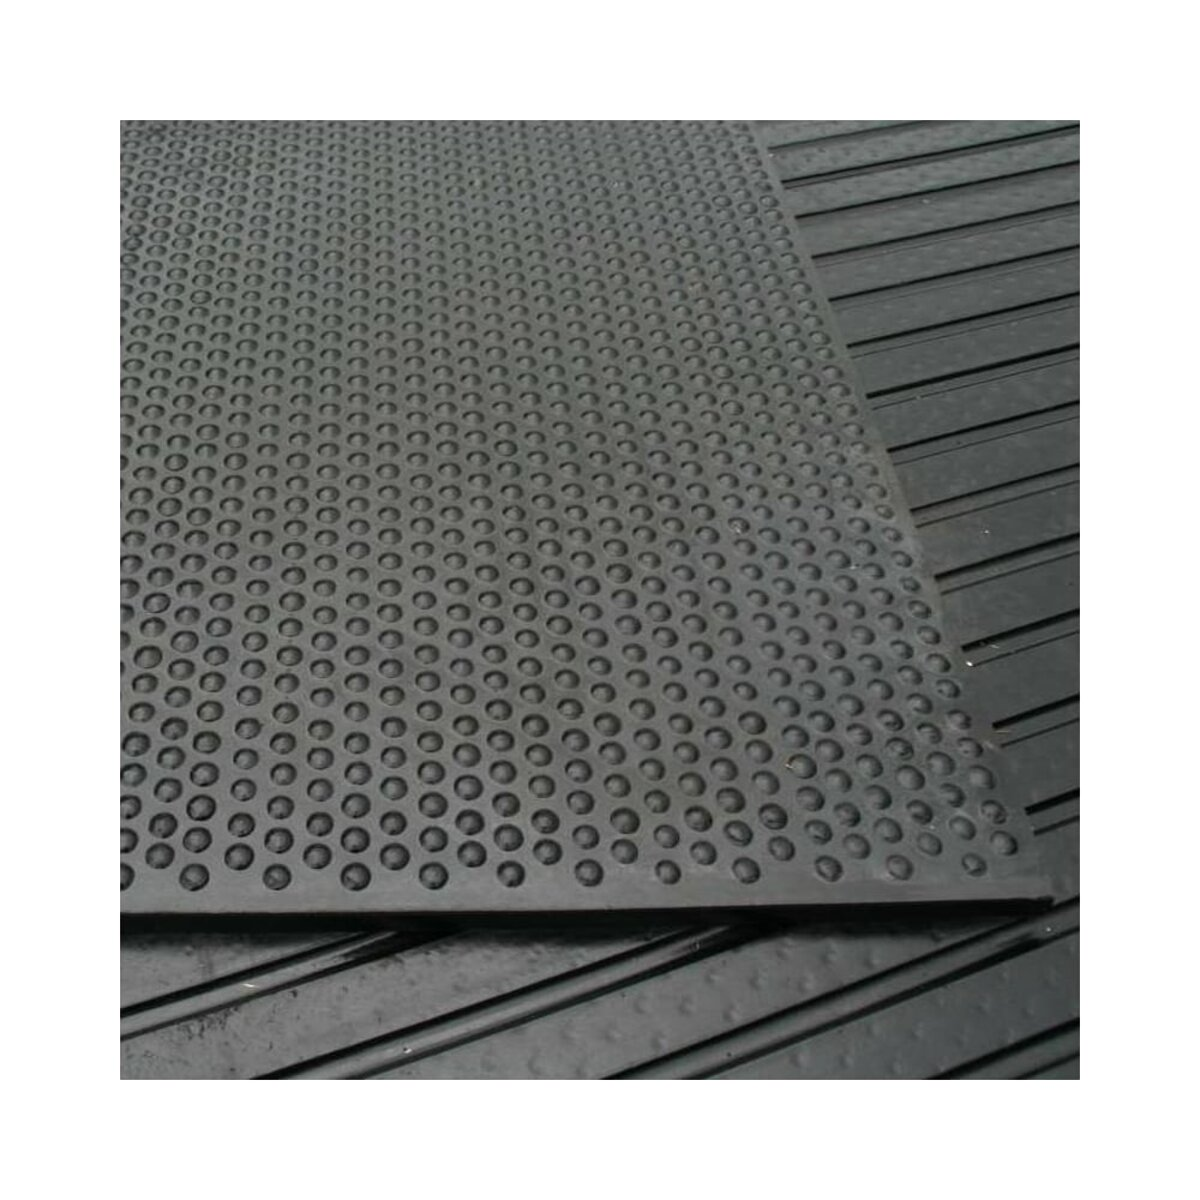 Stable Rubber Matting For Sale In Uk View 67 Bargains